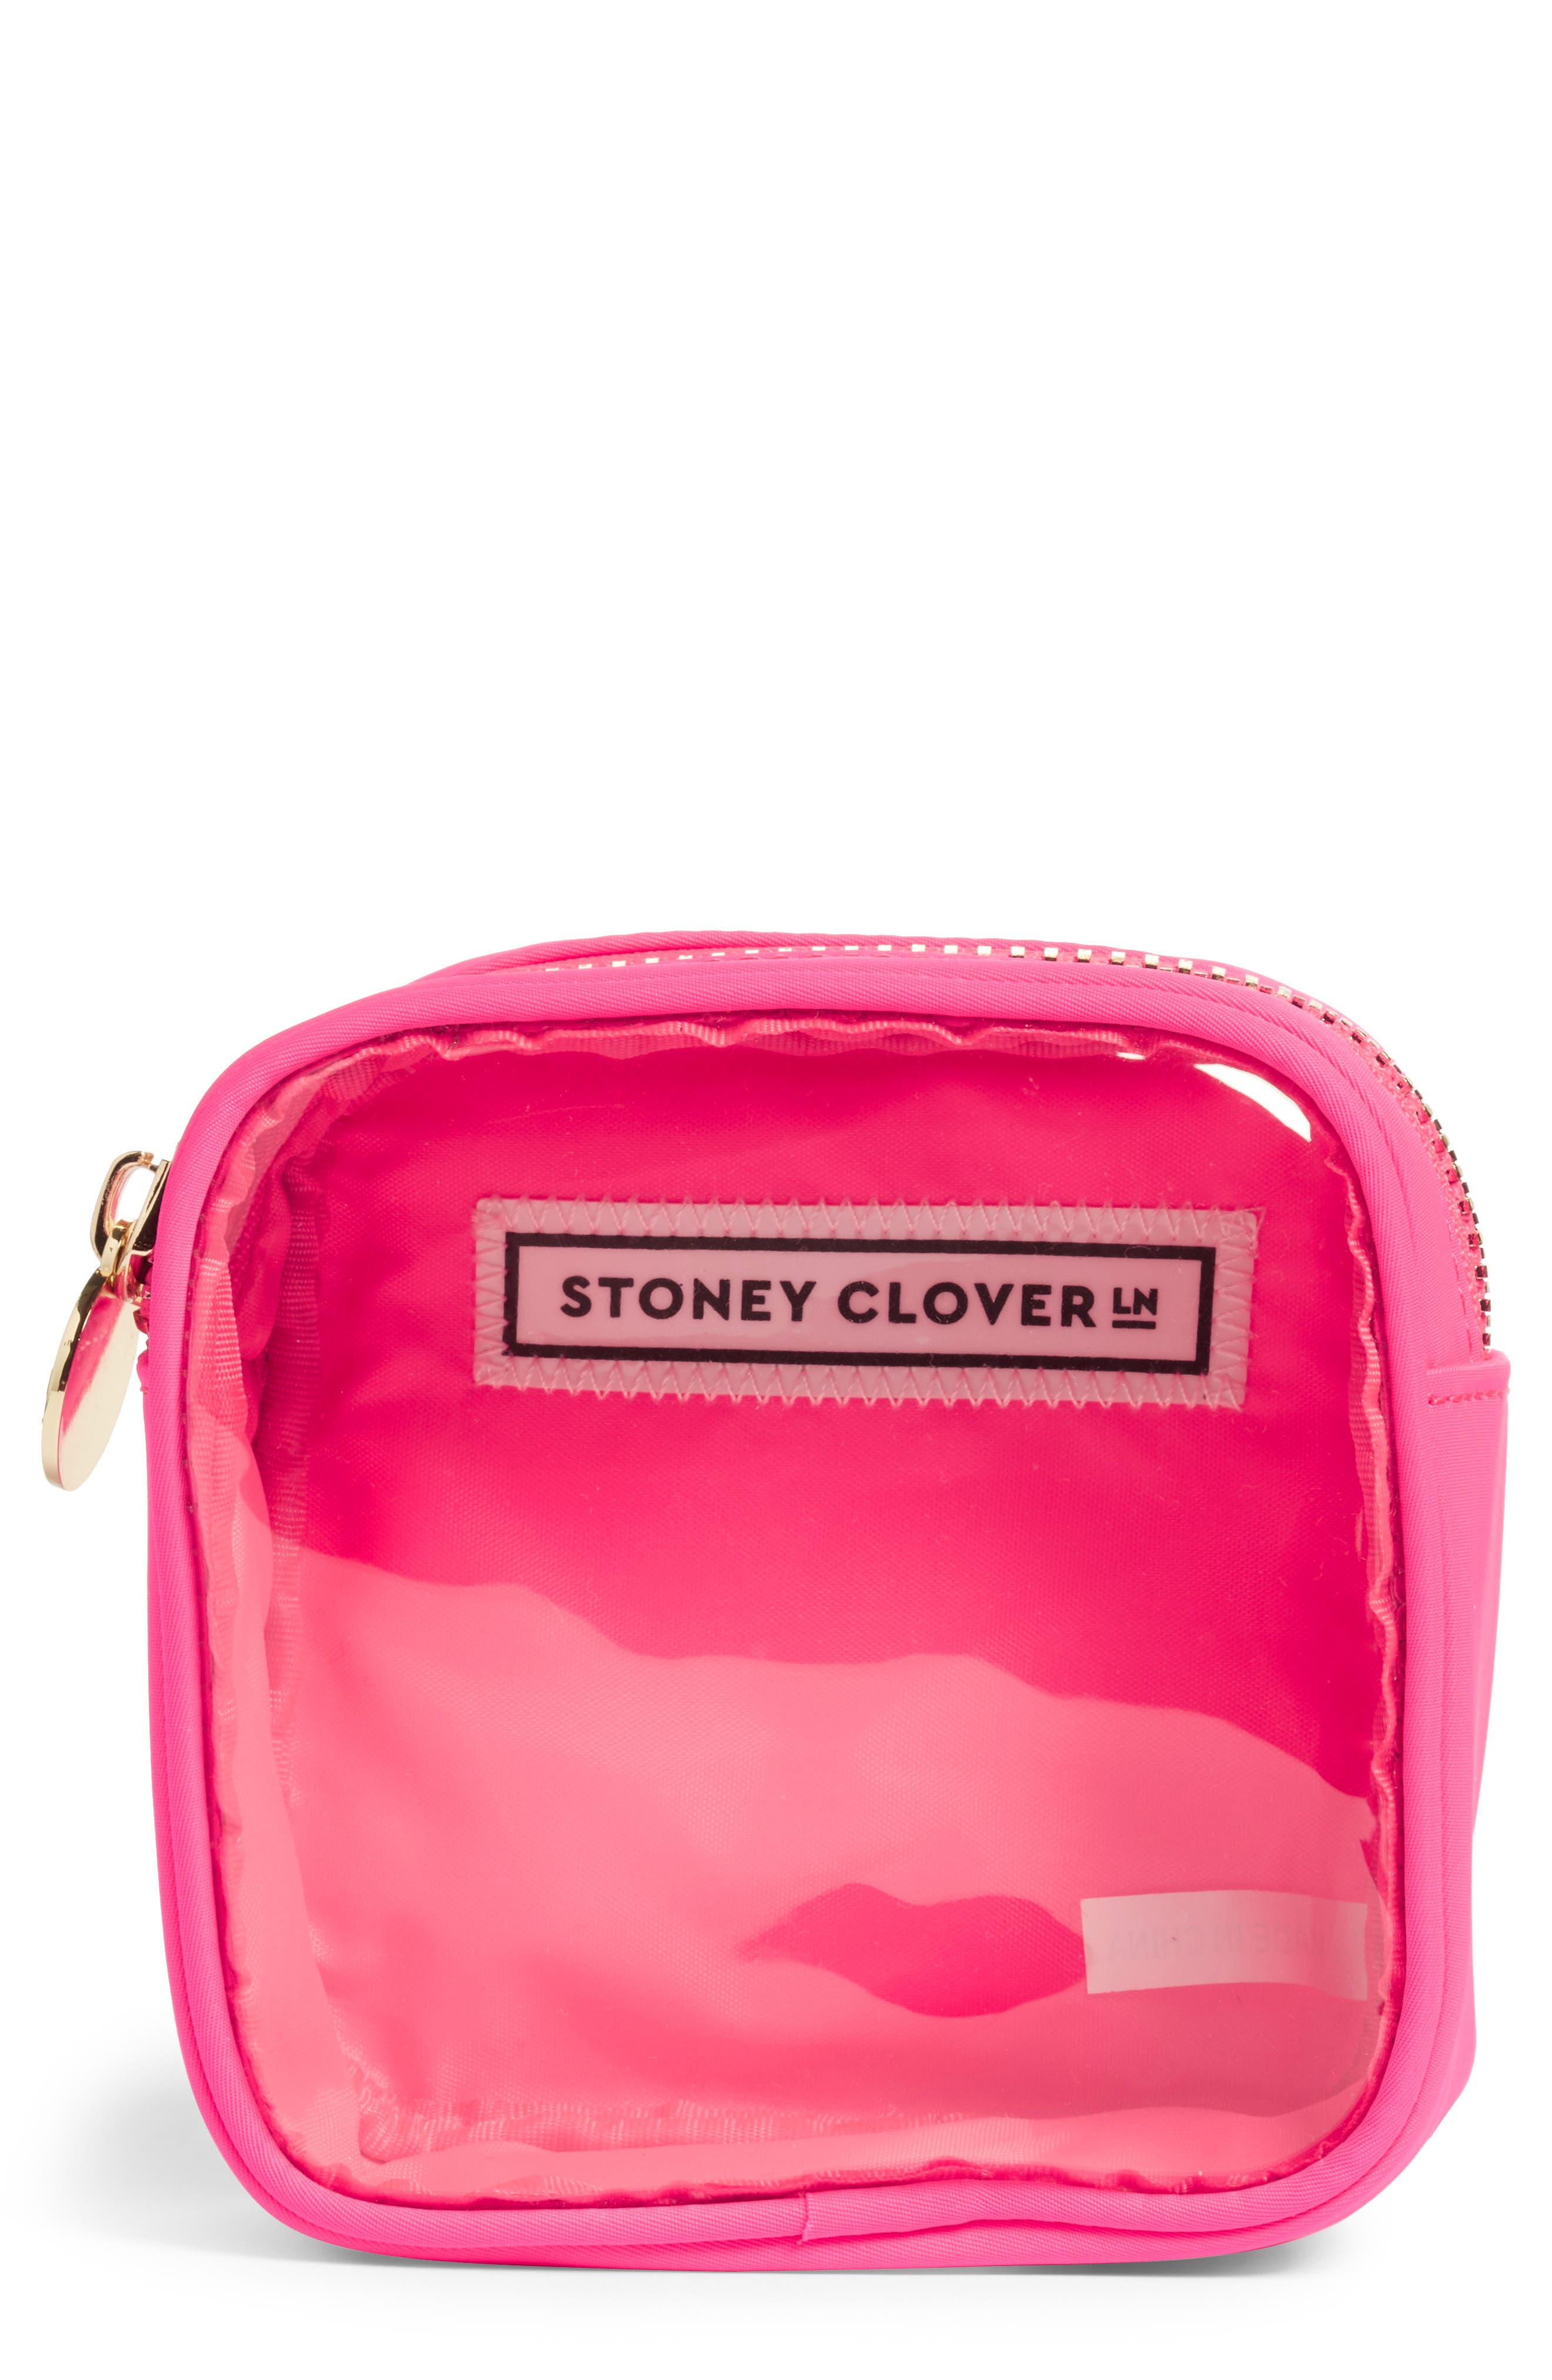 STONEY CLOVER LANE Mini Pouch in Neon Pink